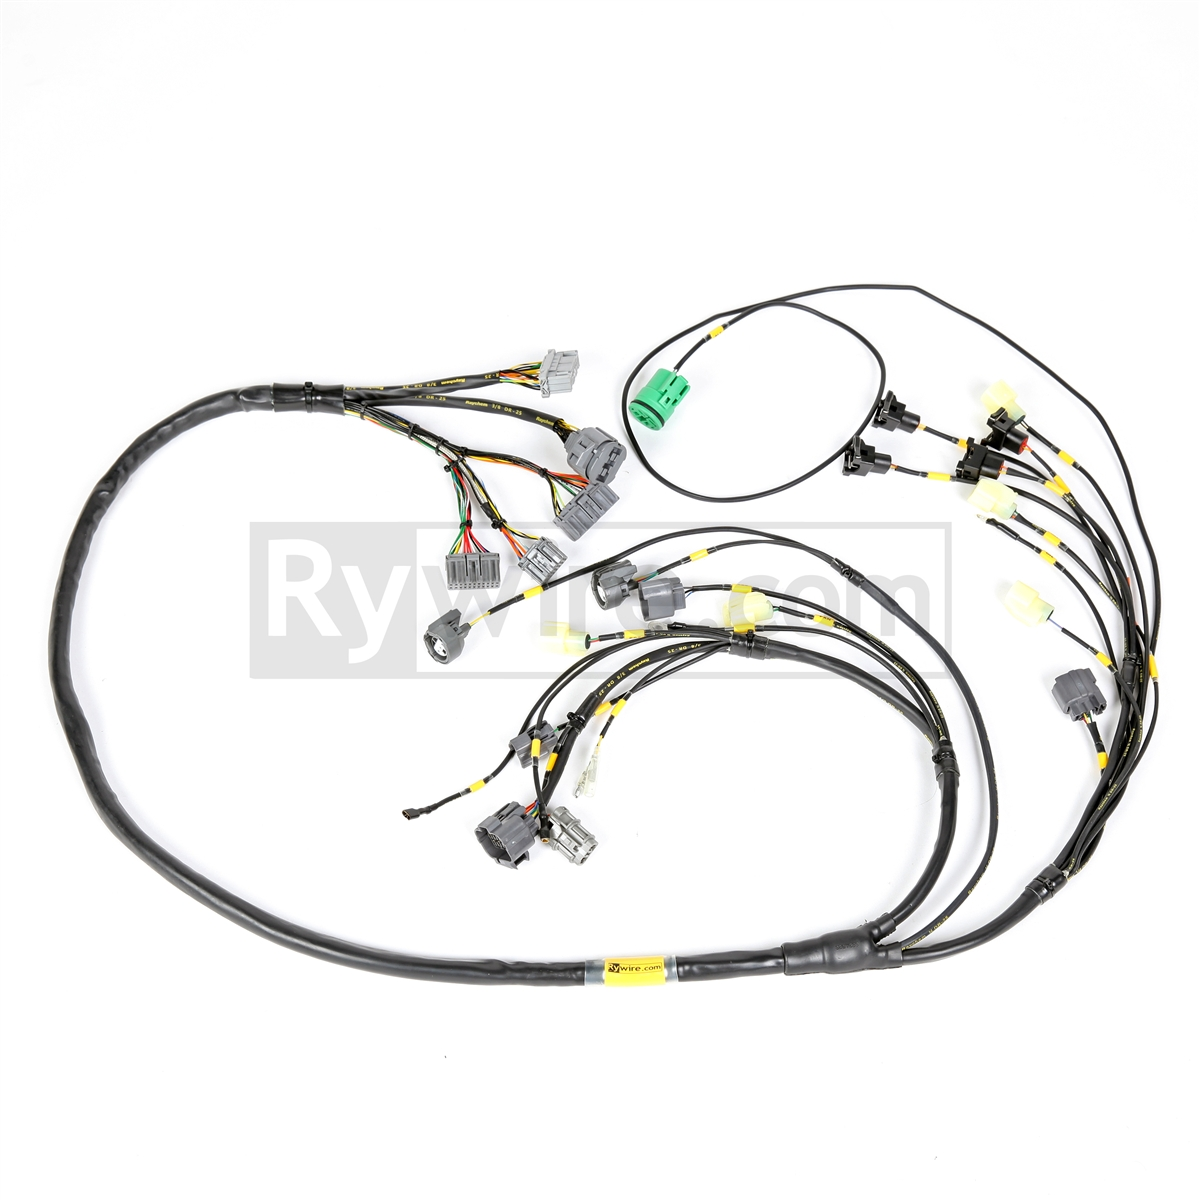 1997 Honda Prelude Fuse Box Diagram Wiring Library Acura Integra Layout Type Sh Obd1 Images Gallery Rywire